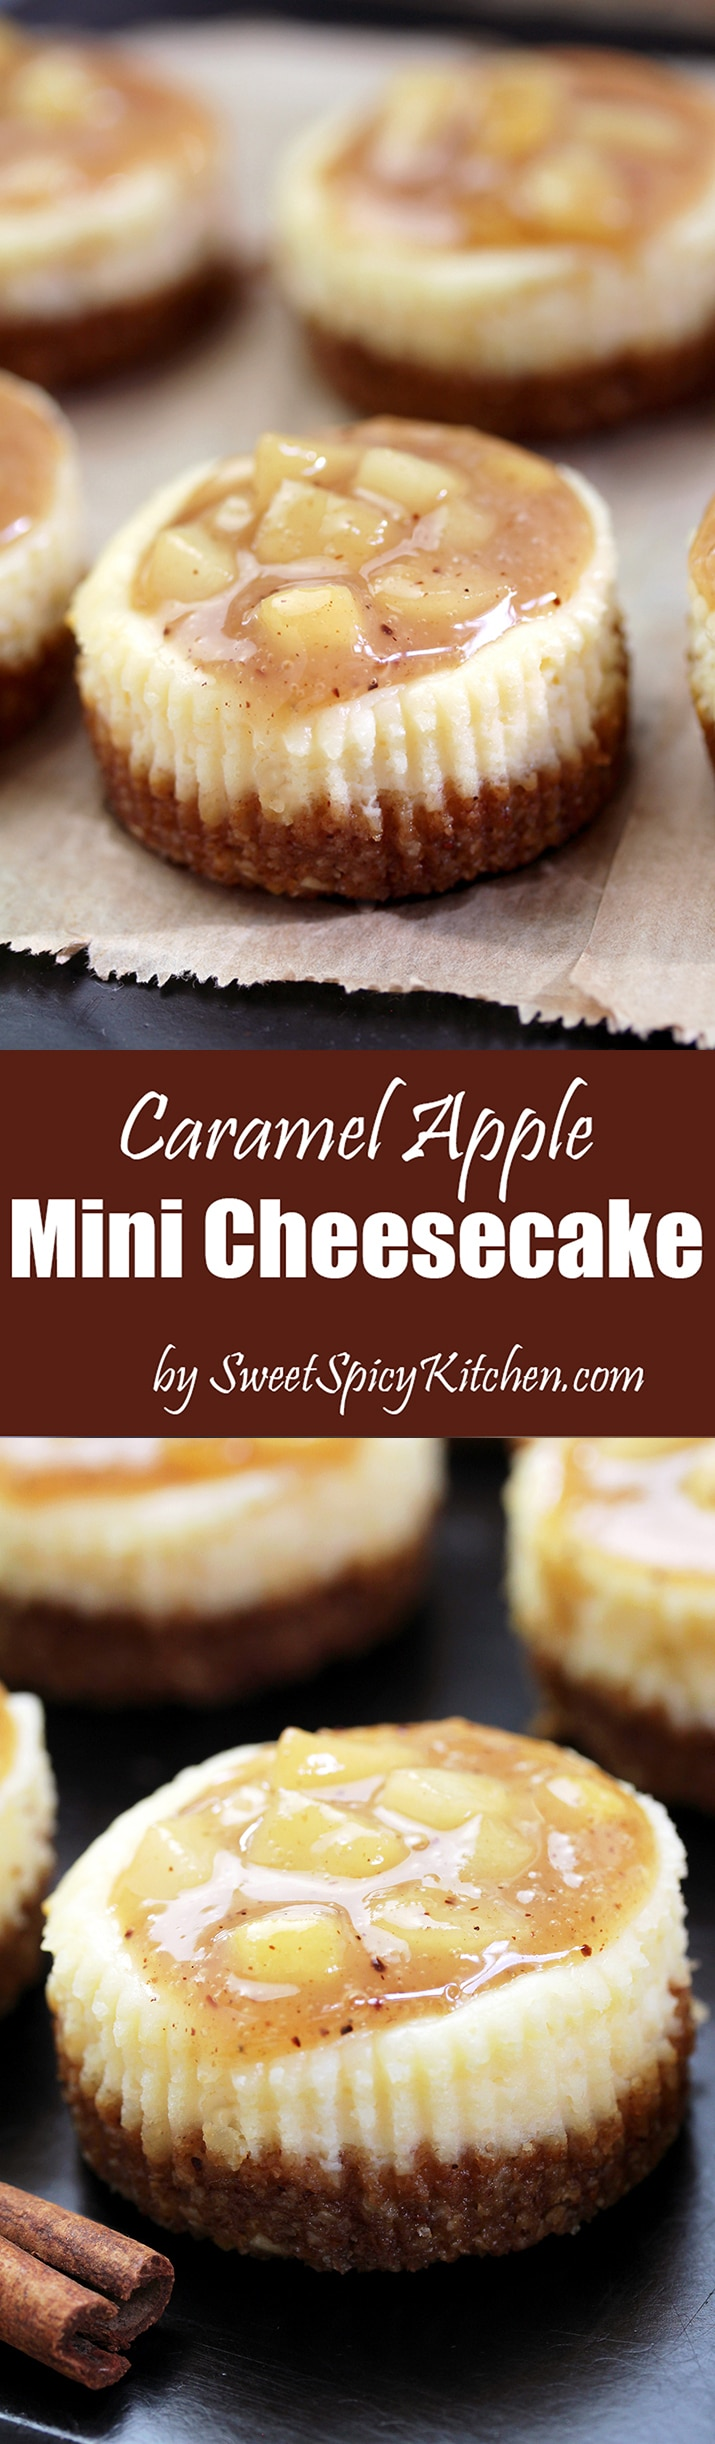 Caramel Apple Mini Cheesecake - with caramel topping and apples just perfect for fall days.